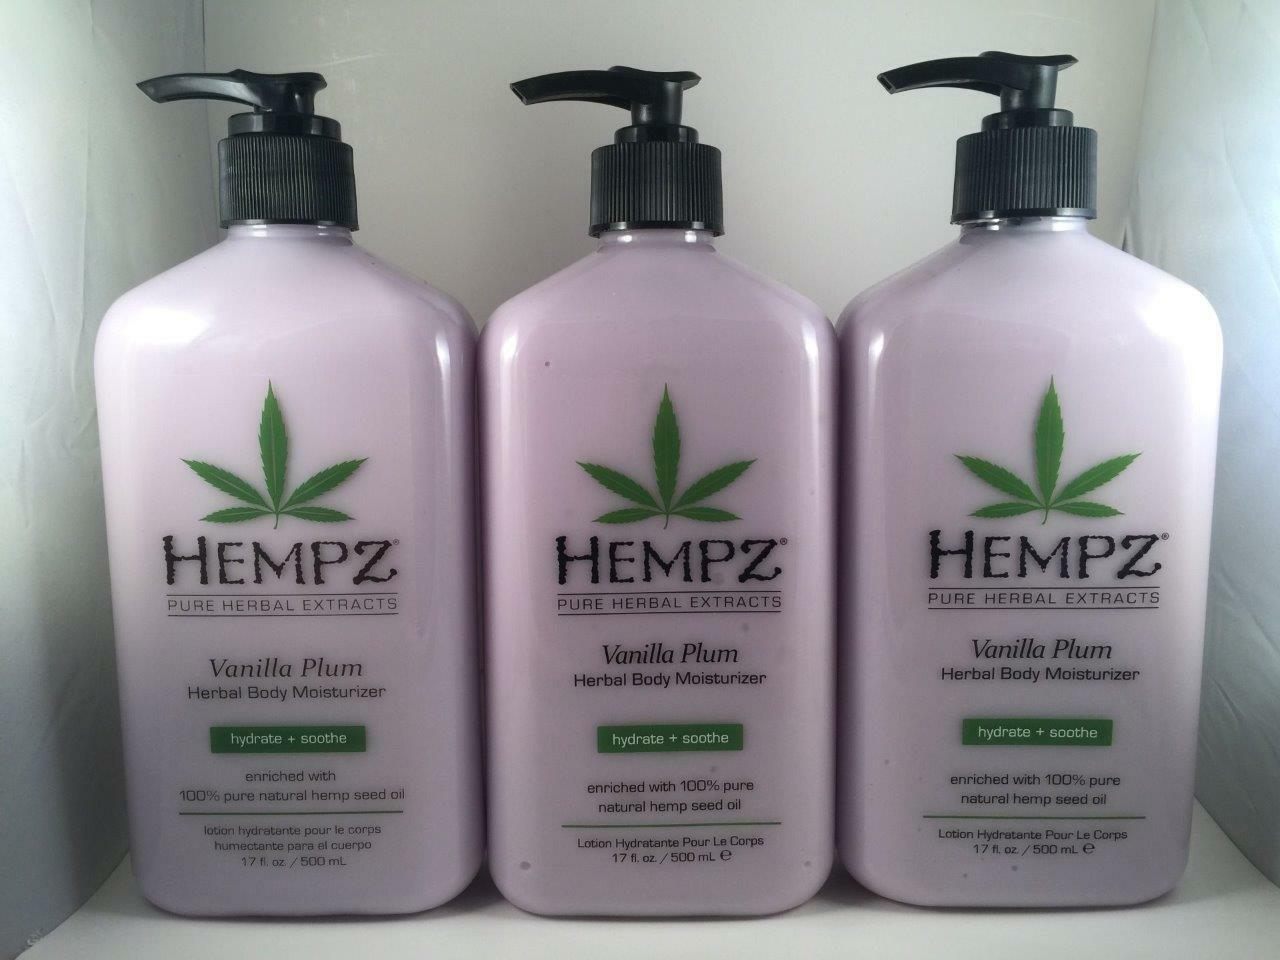 Hempz Lotion Vanilla Plum Herbal Body Moisturizer Daily A...